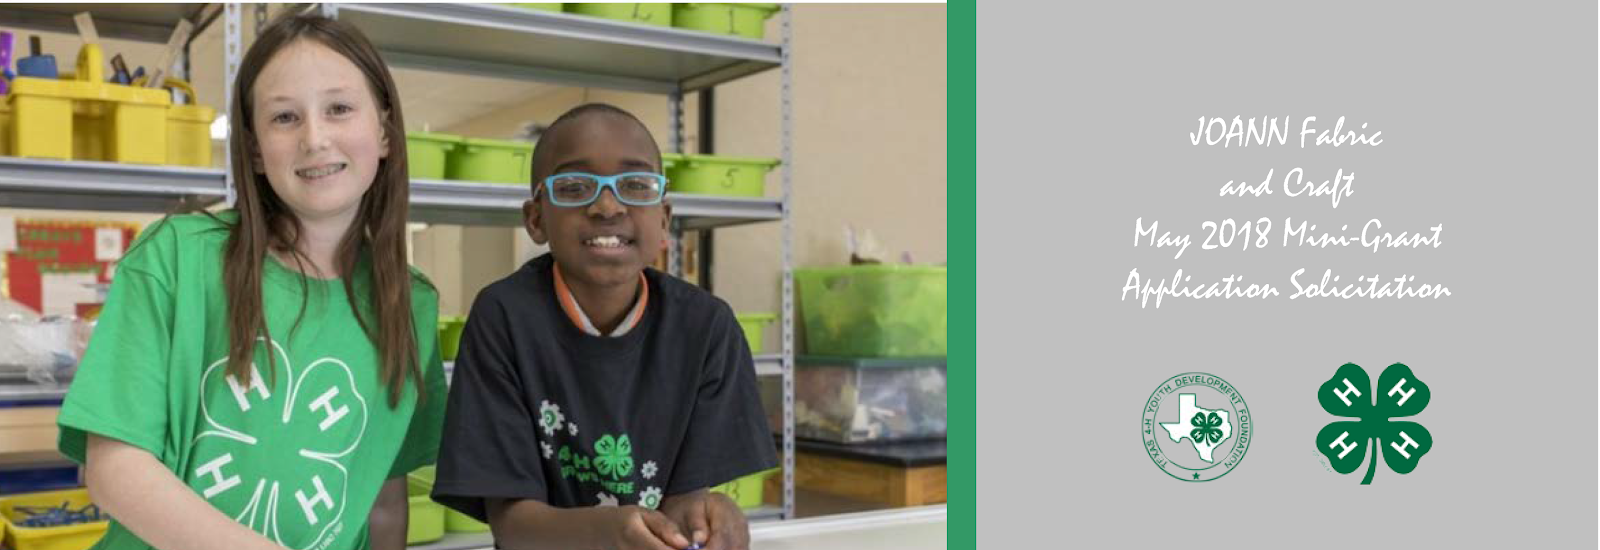 Texas 4 H Practitioner S Blog Joann Fabric And Craft Mini Grant Application Released